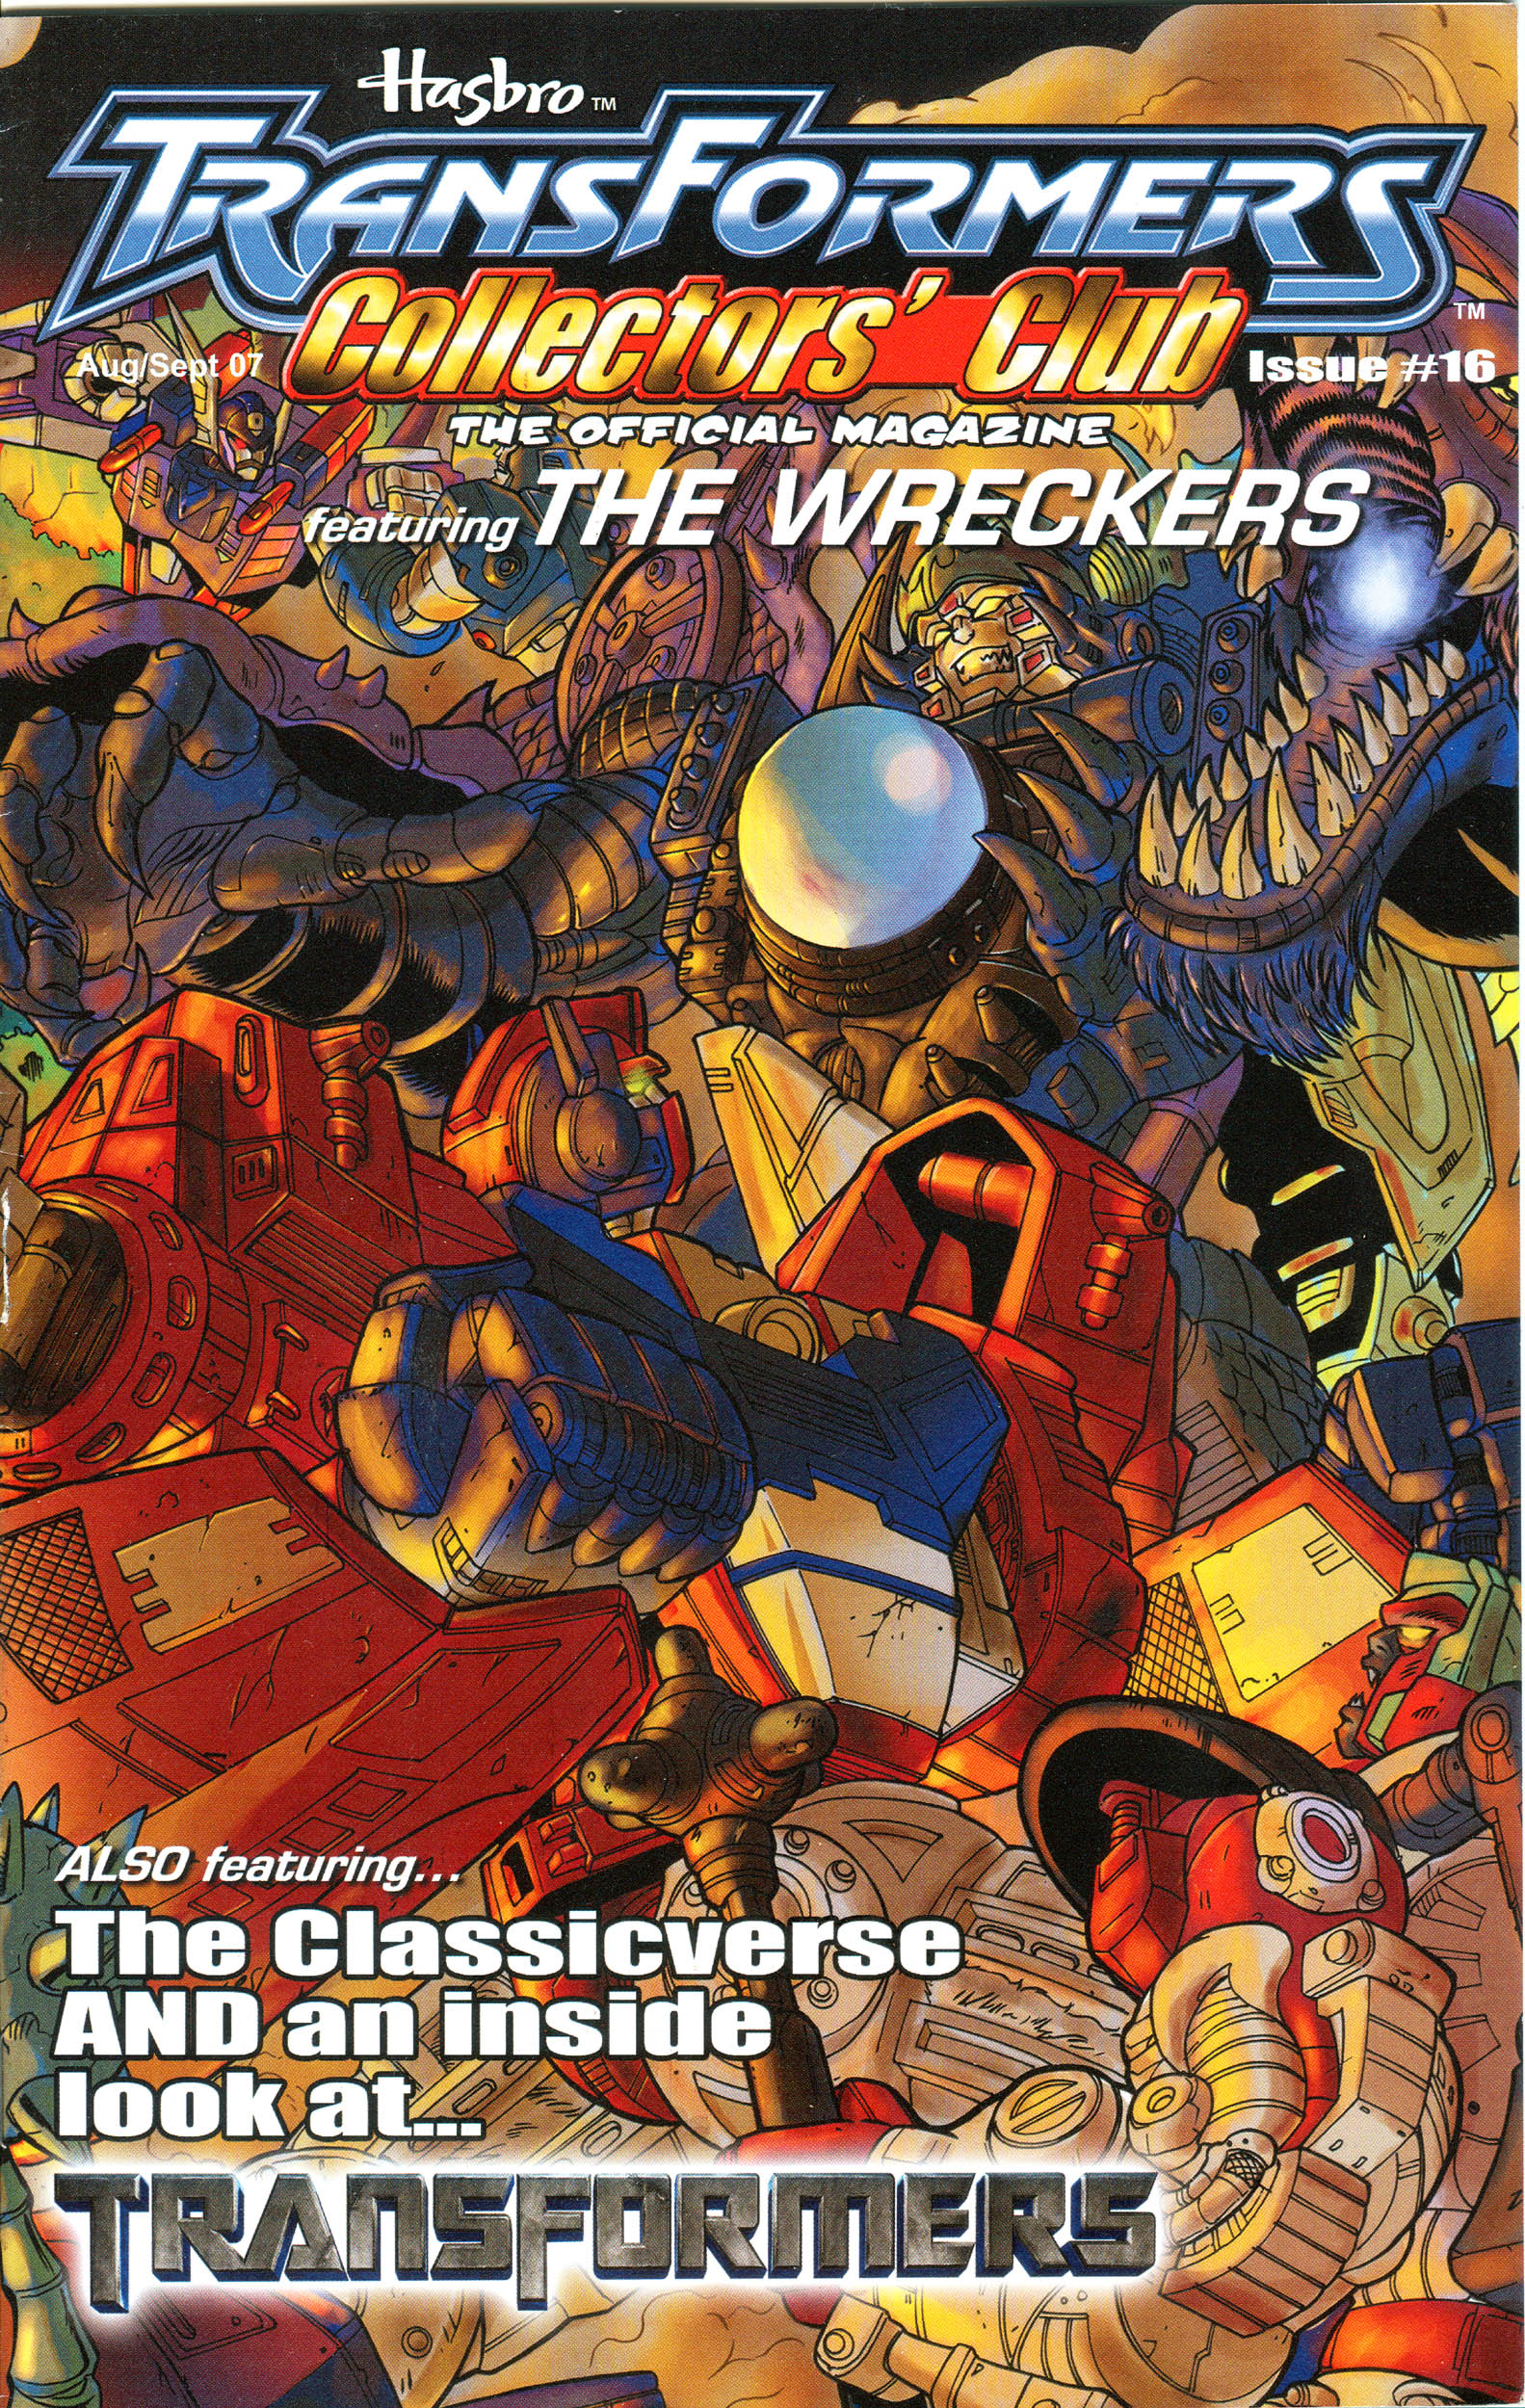 Read online Transformers: Collectors' Club comic -  Issue #16 - 1